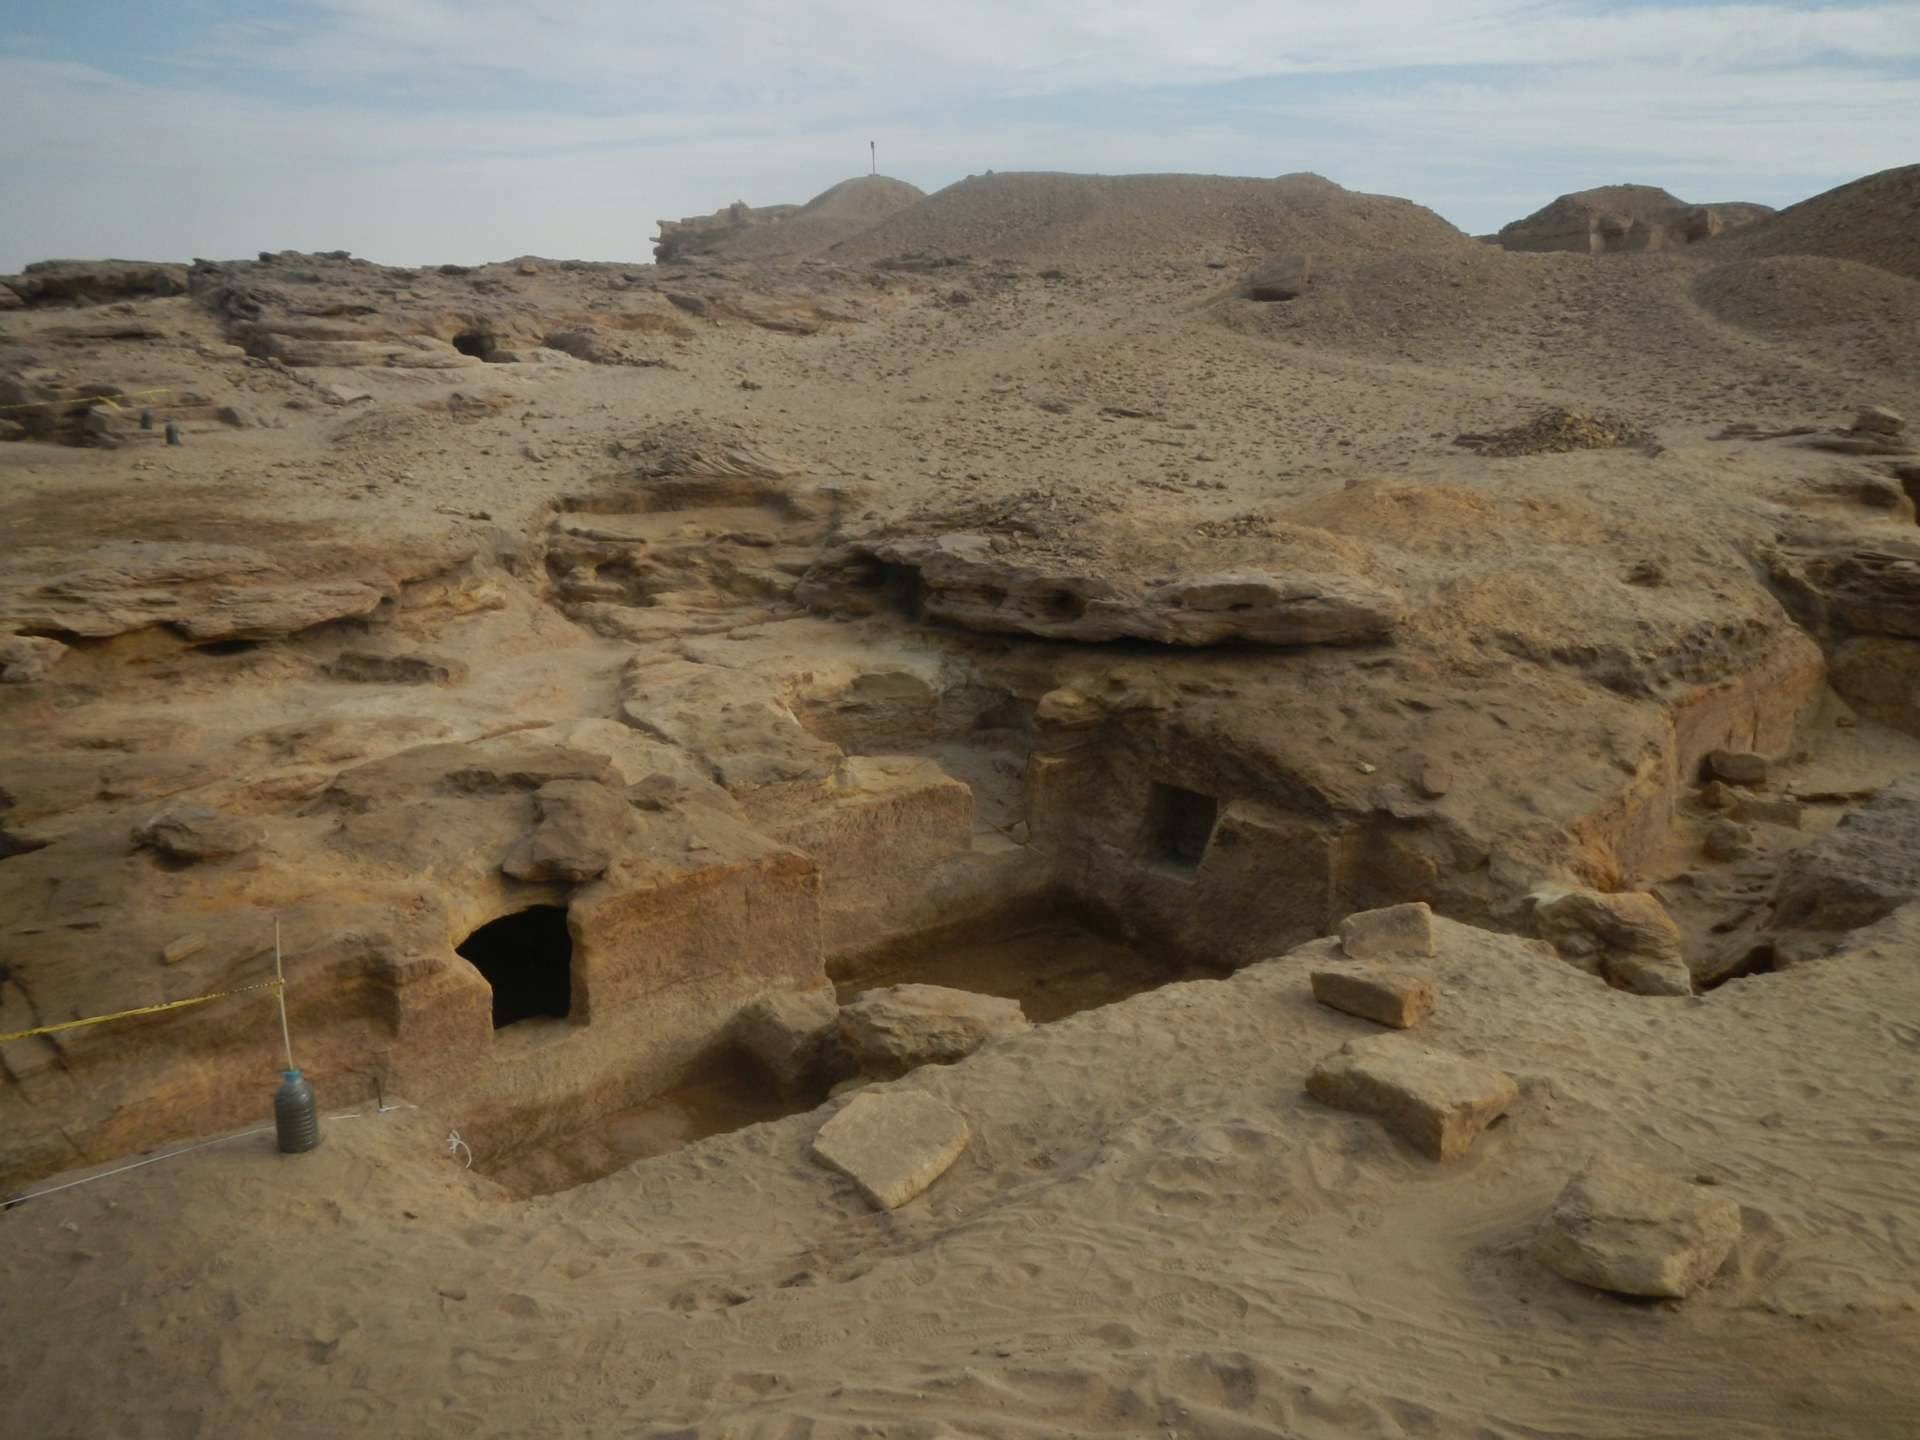 Like in the Valley of the Kings, the necropolis involves multiple entrances that link to multiple tombs, which in turn lead to crypts. Only a few dozen of the more then 55 tombs found have been excavated so far.